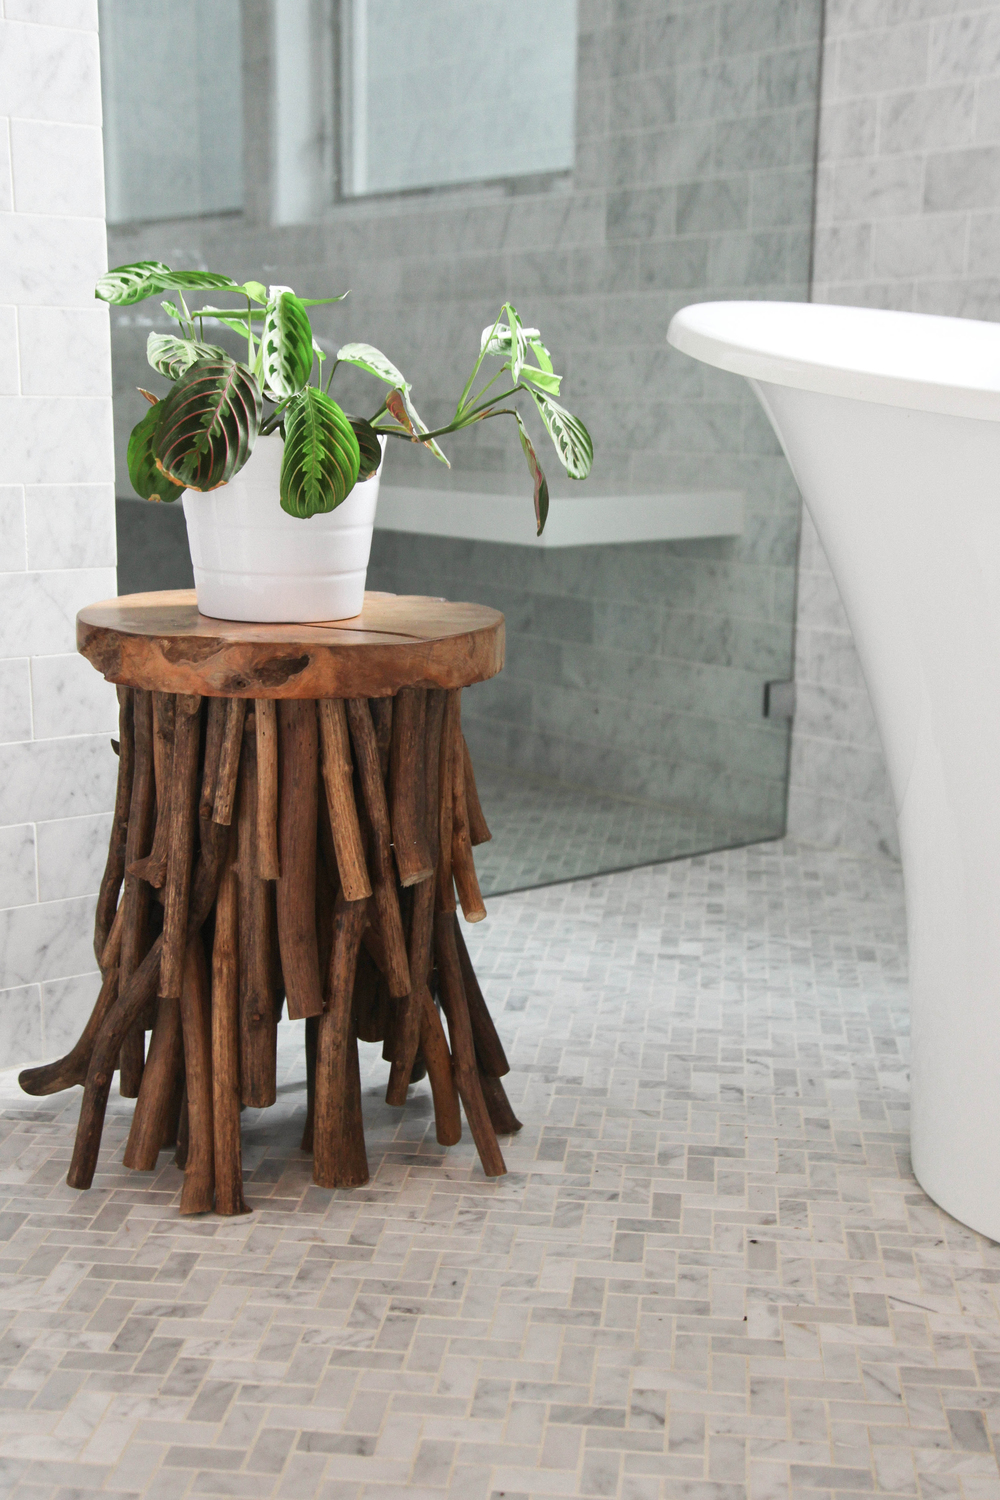 Putting plants in your bathroom is also an excellent way to dress up your bathroom.